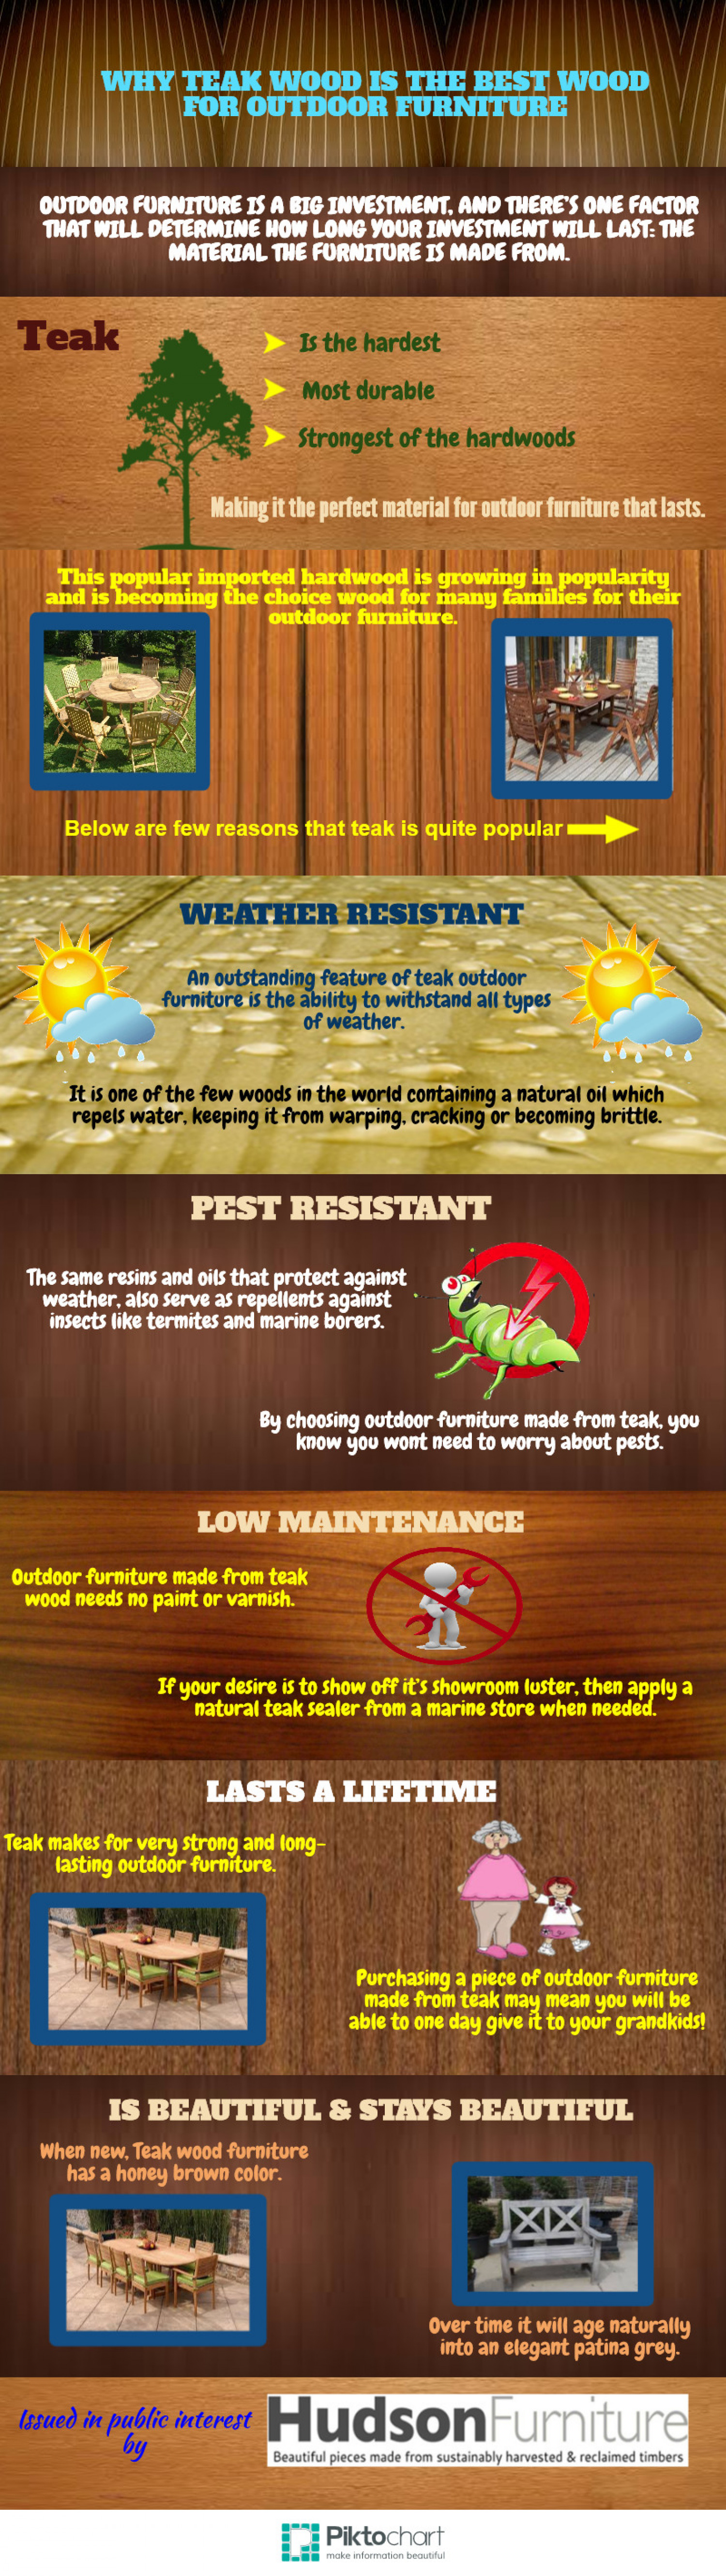 Why Teak Wood Is The Best Wood For Outdoor Furniture? Infographic   Why  Teak Wood Part 93